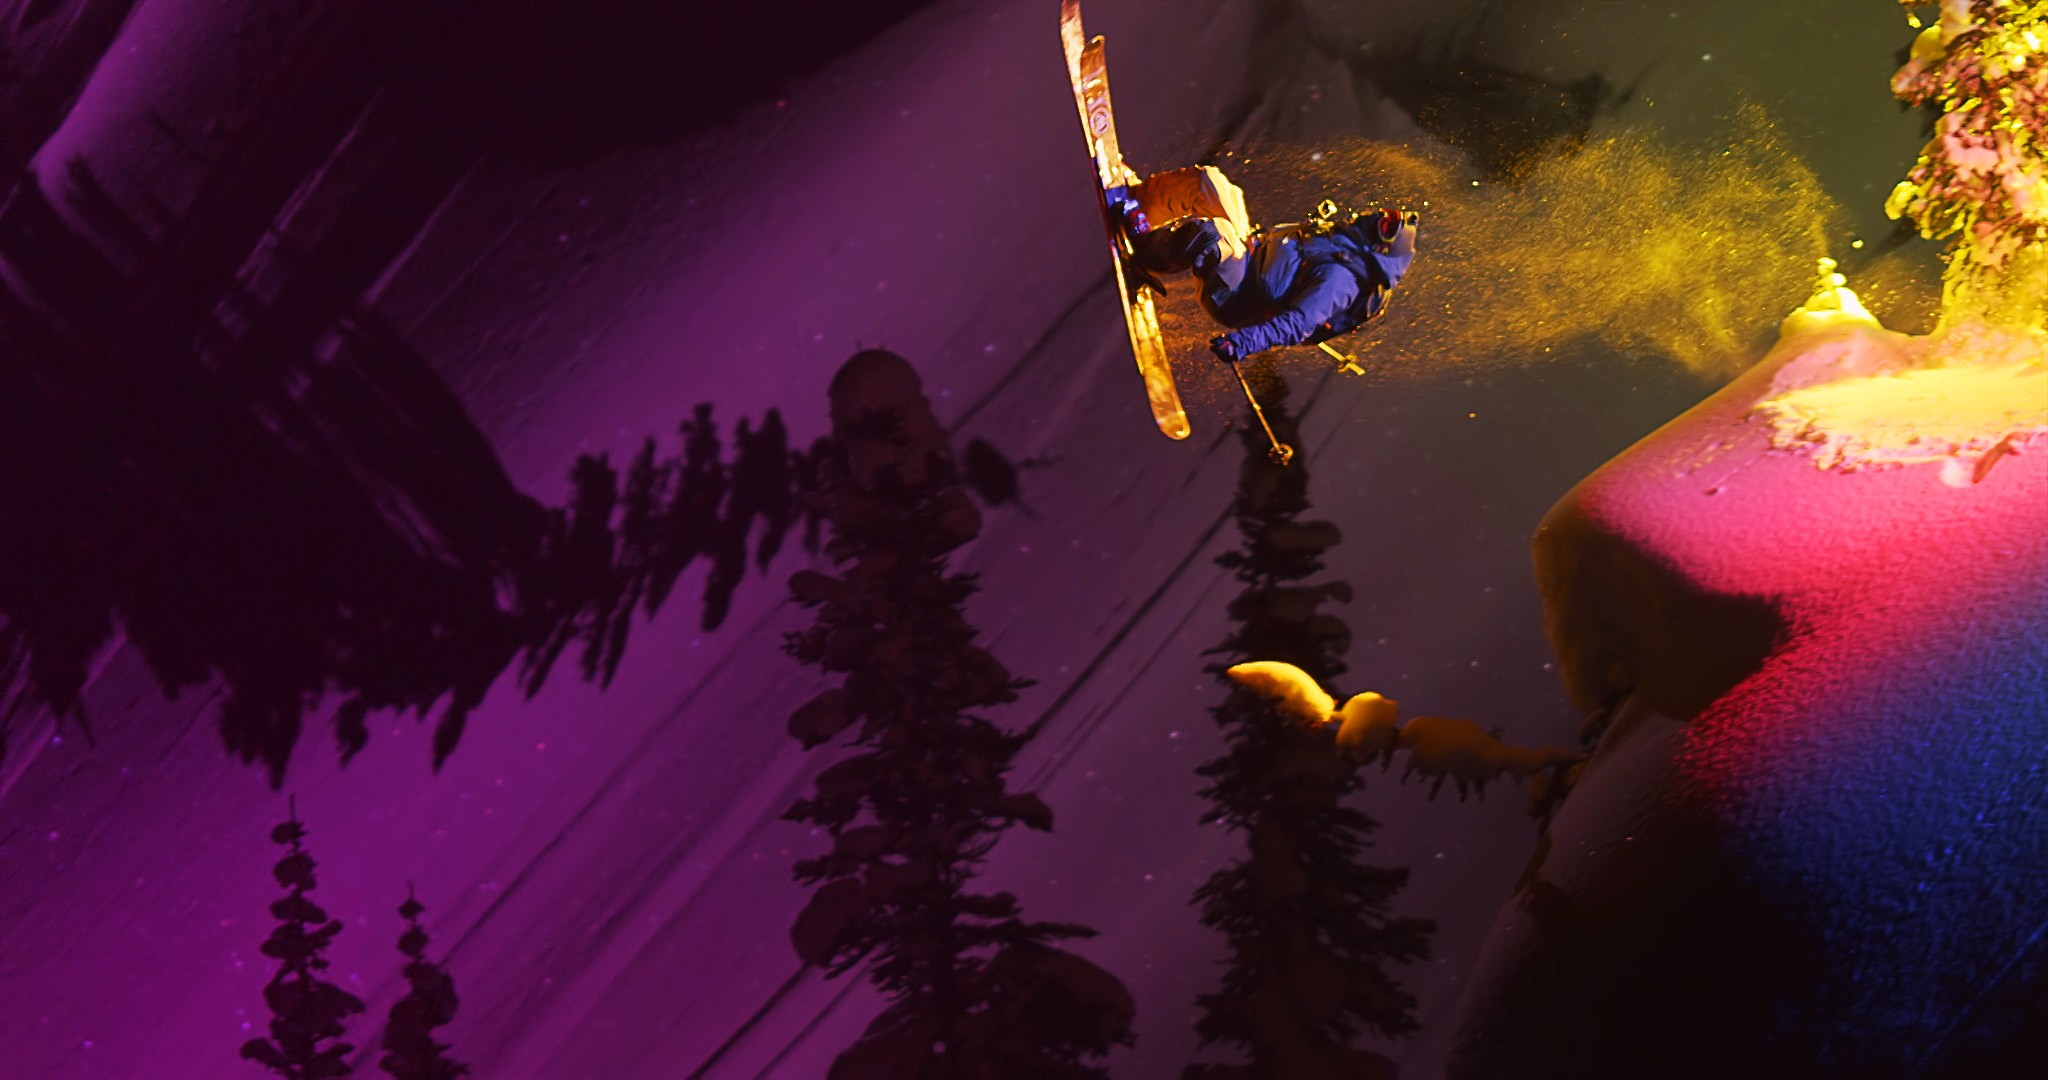 Sweetgrass Productions: Afterglow Skiing Movie, Skier Jumping Off of A Cliff Lit With Vibrant Color